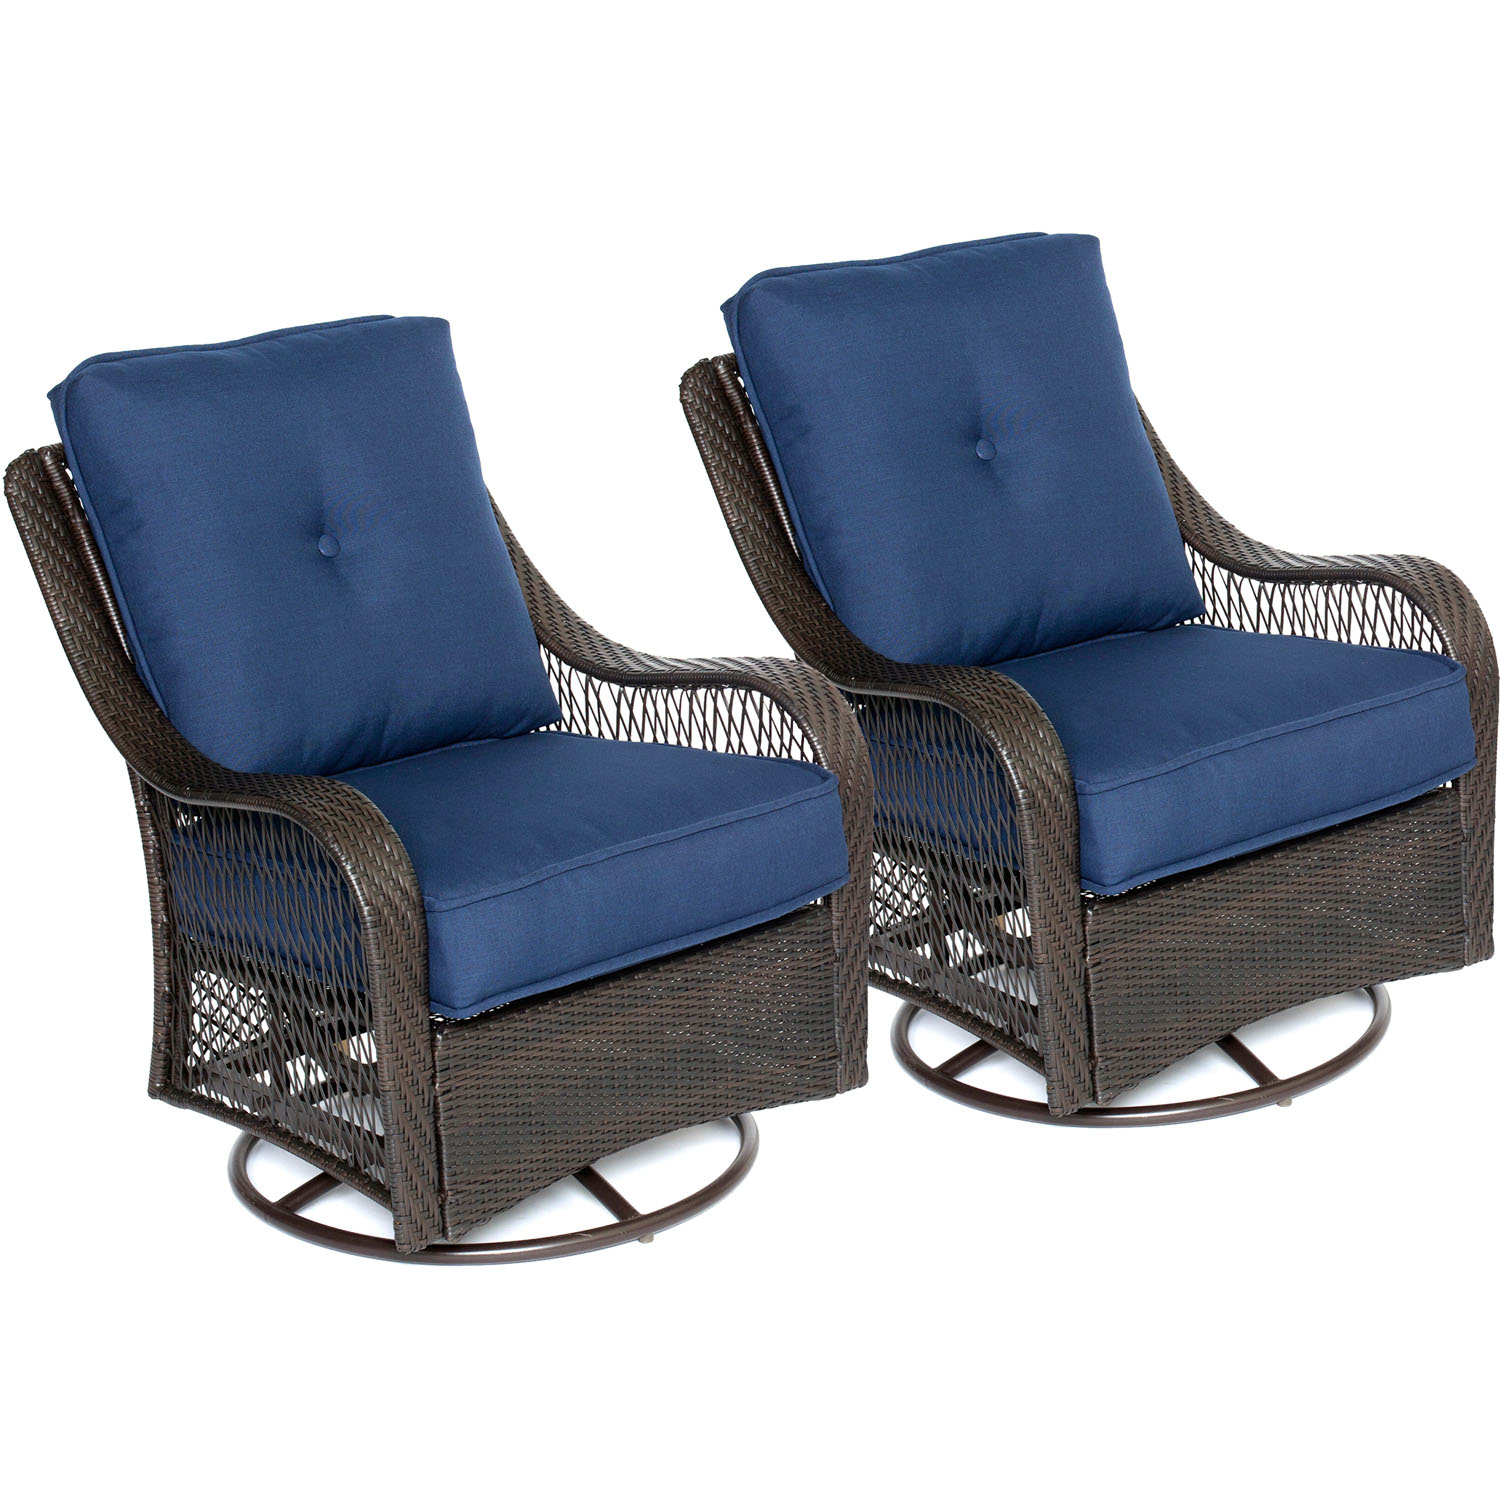 Hanover Orleans Outdoor Swivel Rocking Chairs   Walmart.com